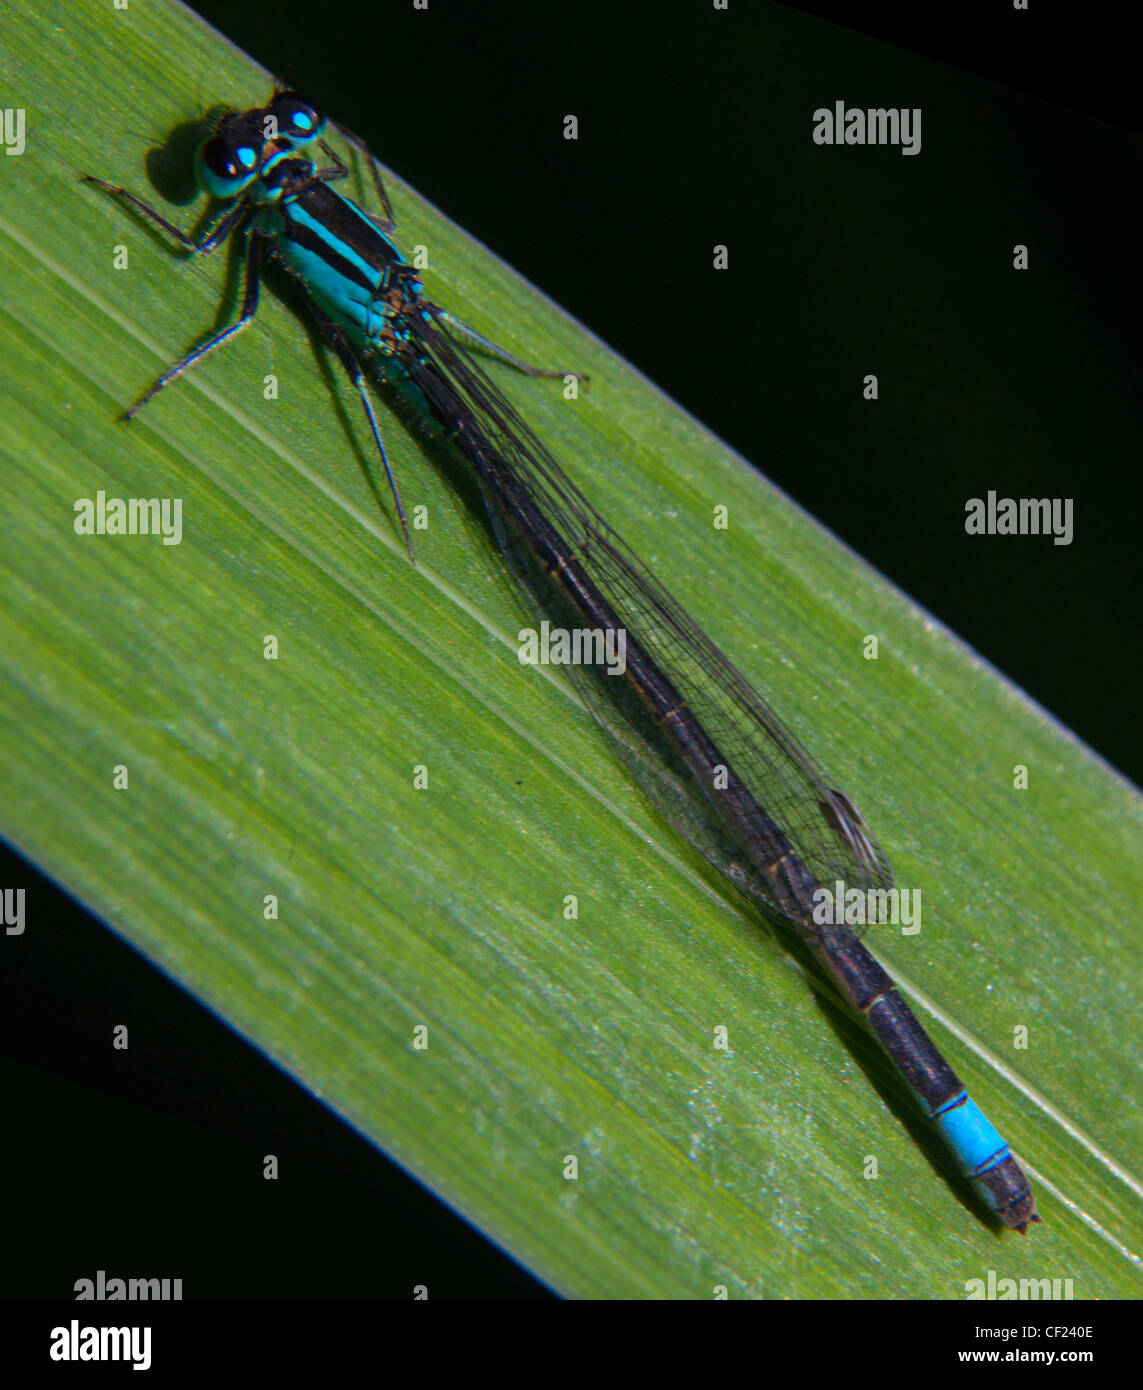 Damsel Fly Damselflies (suborder Zygoptera) insects in the order Odonata. This is a Blue sample example sitting - Stock Image